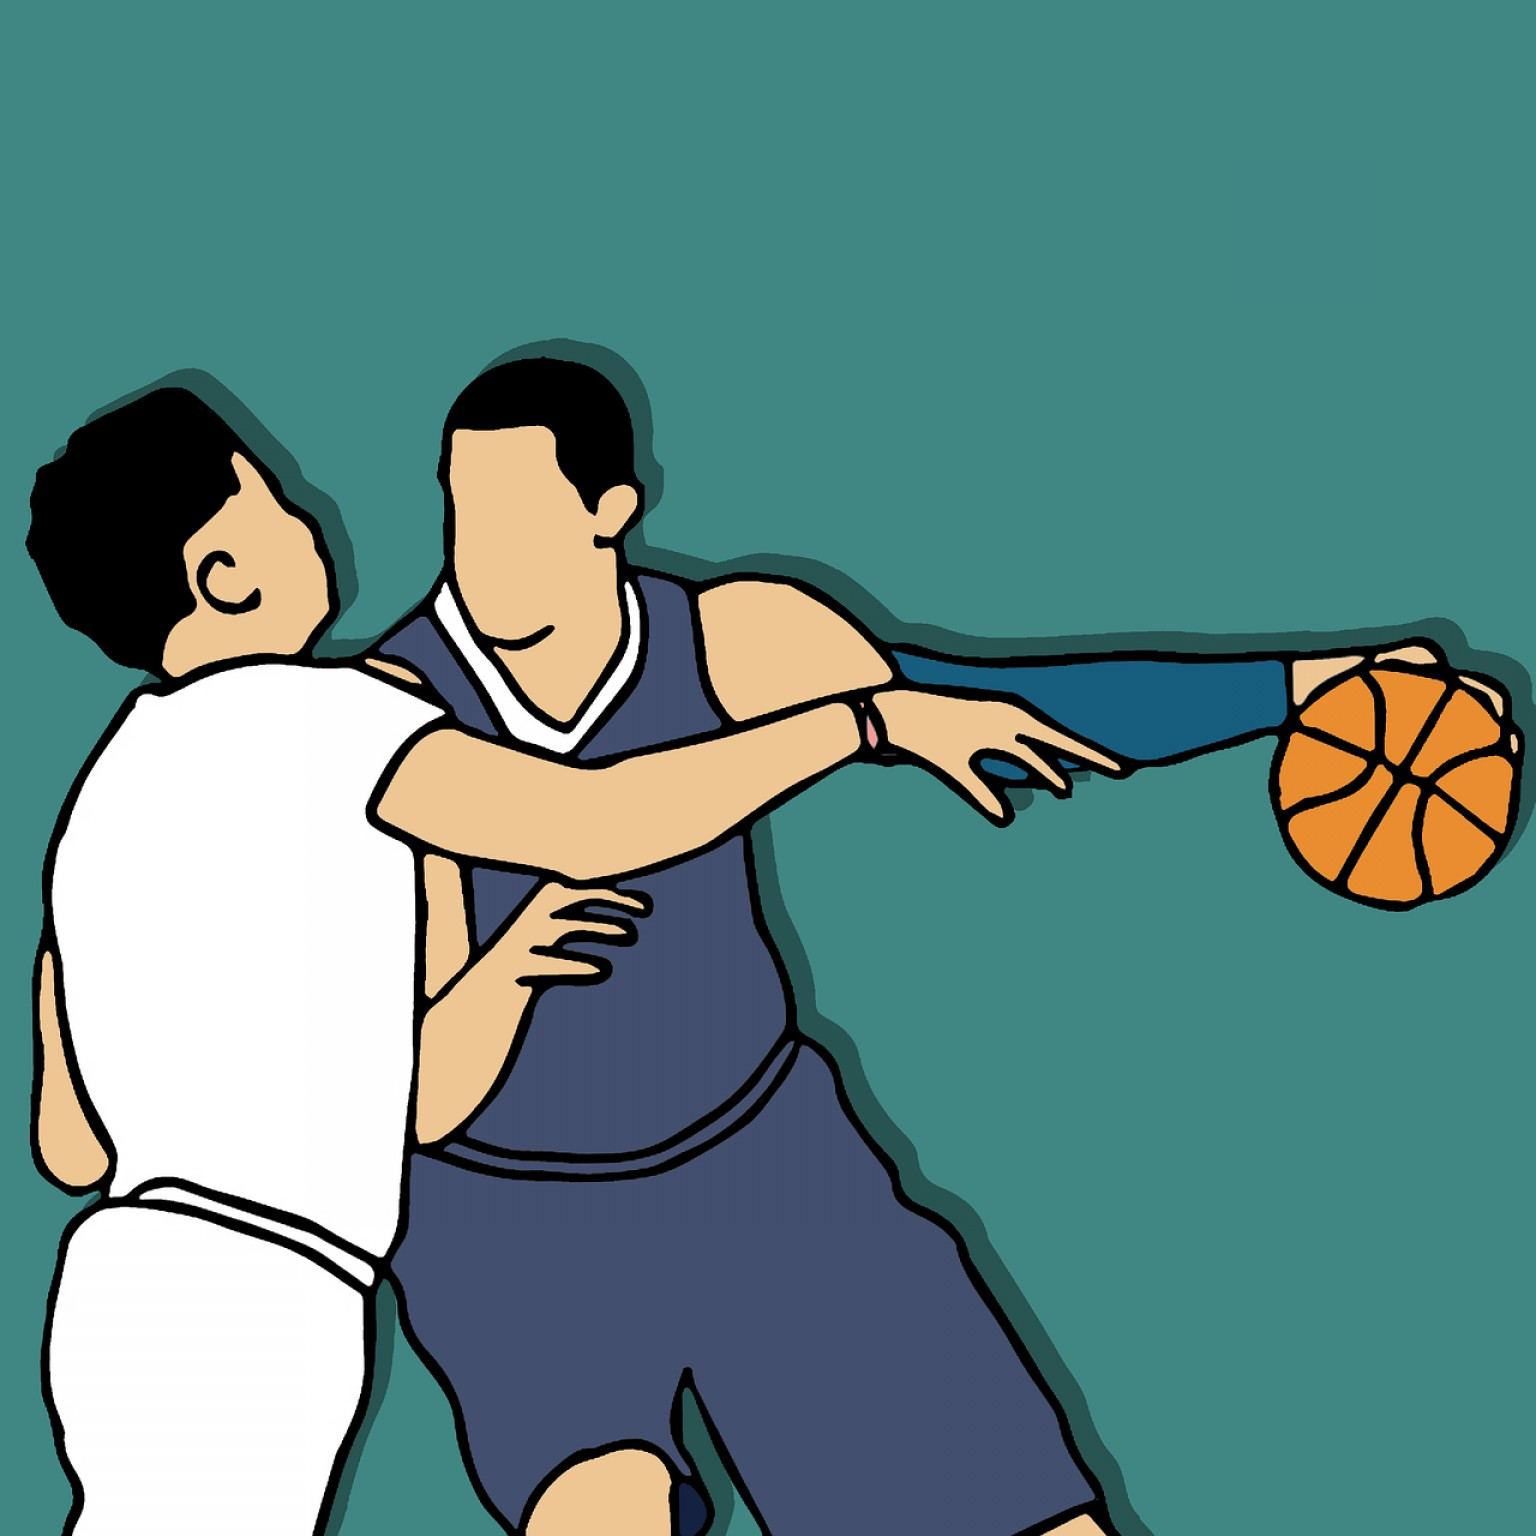 Spurs Clip Art Vector: Spurs Basketball Sports Challenge Power Defense Attack Push Vector